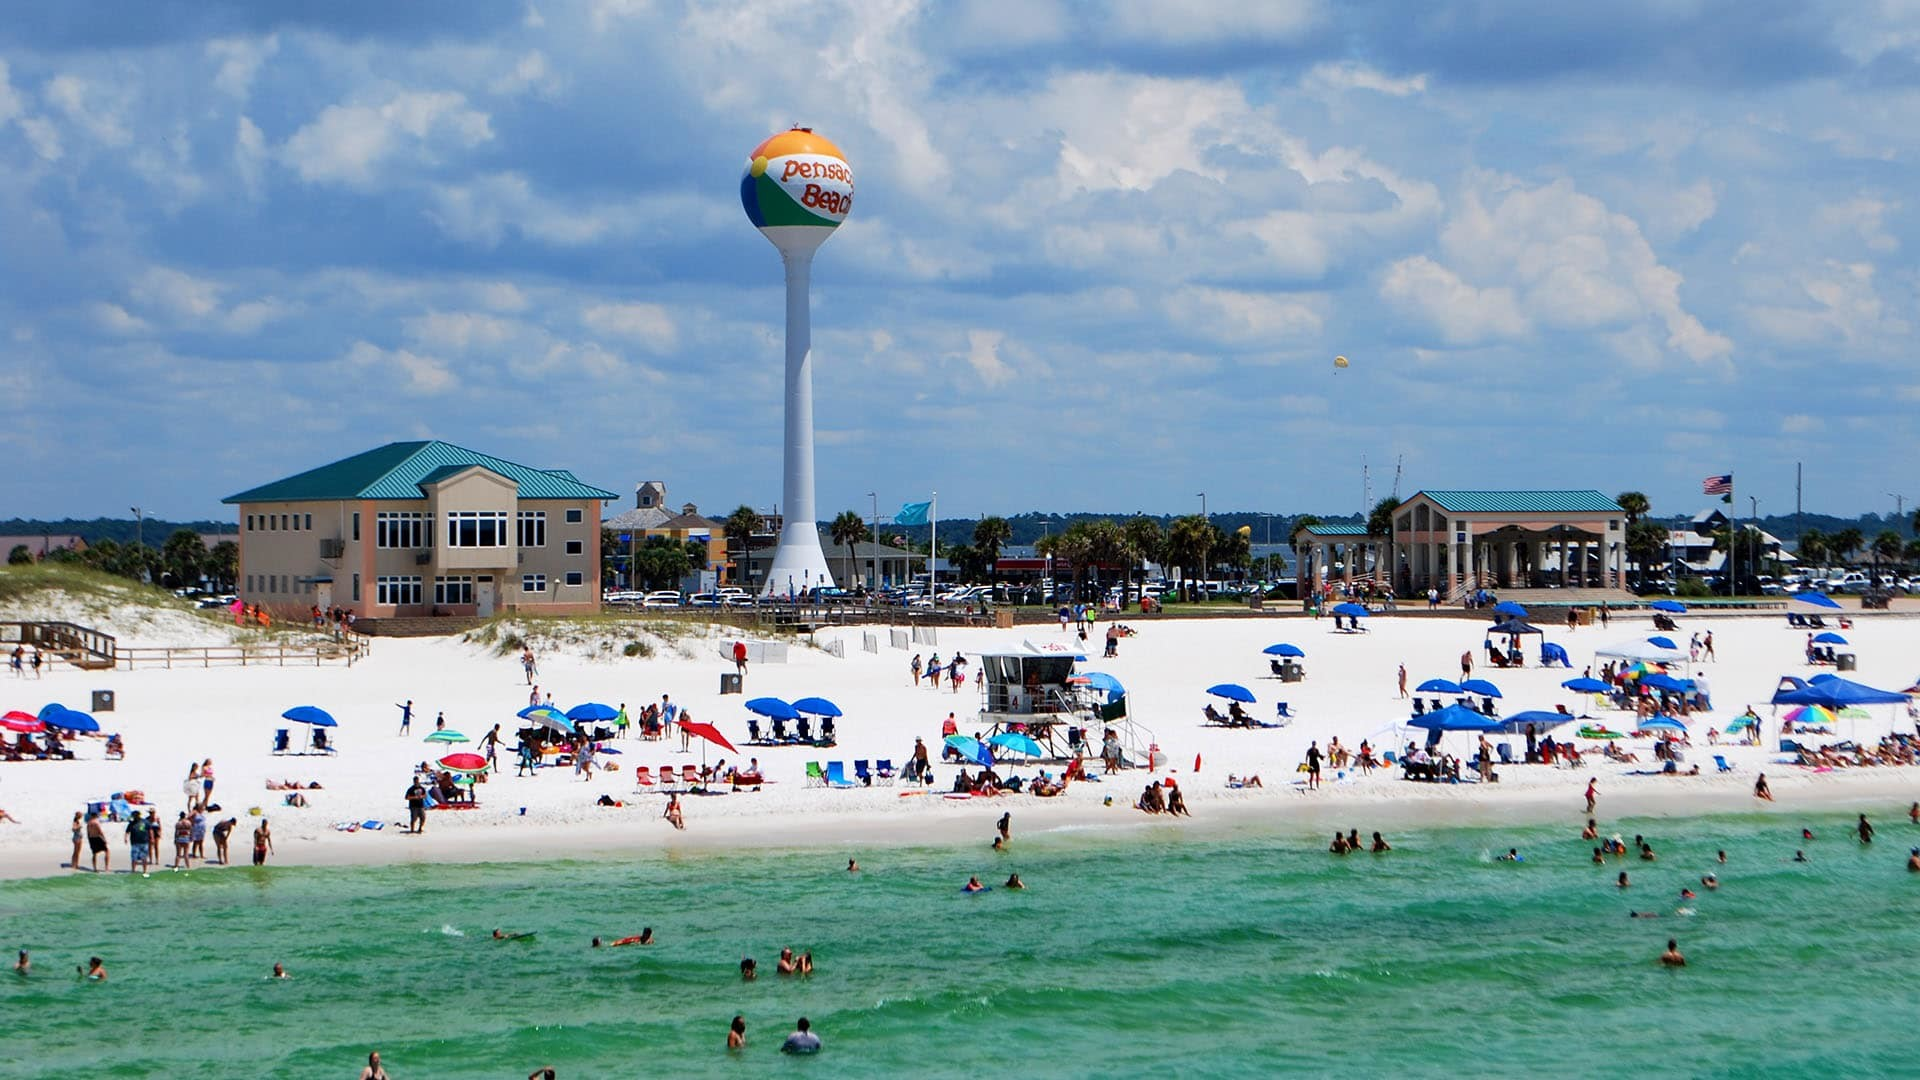 1920x1080 The beach ball water tower is a symbol of Pensacola Beach.